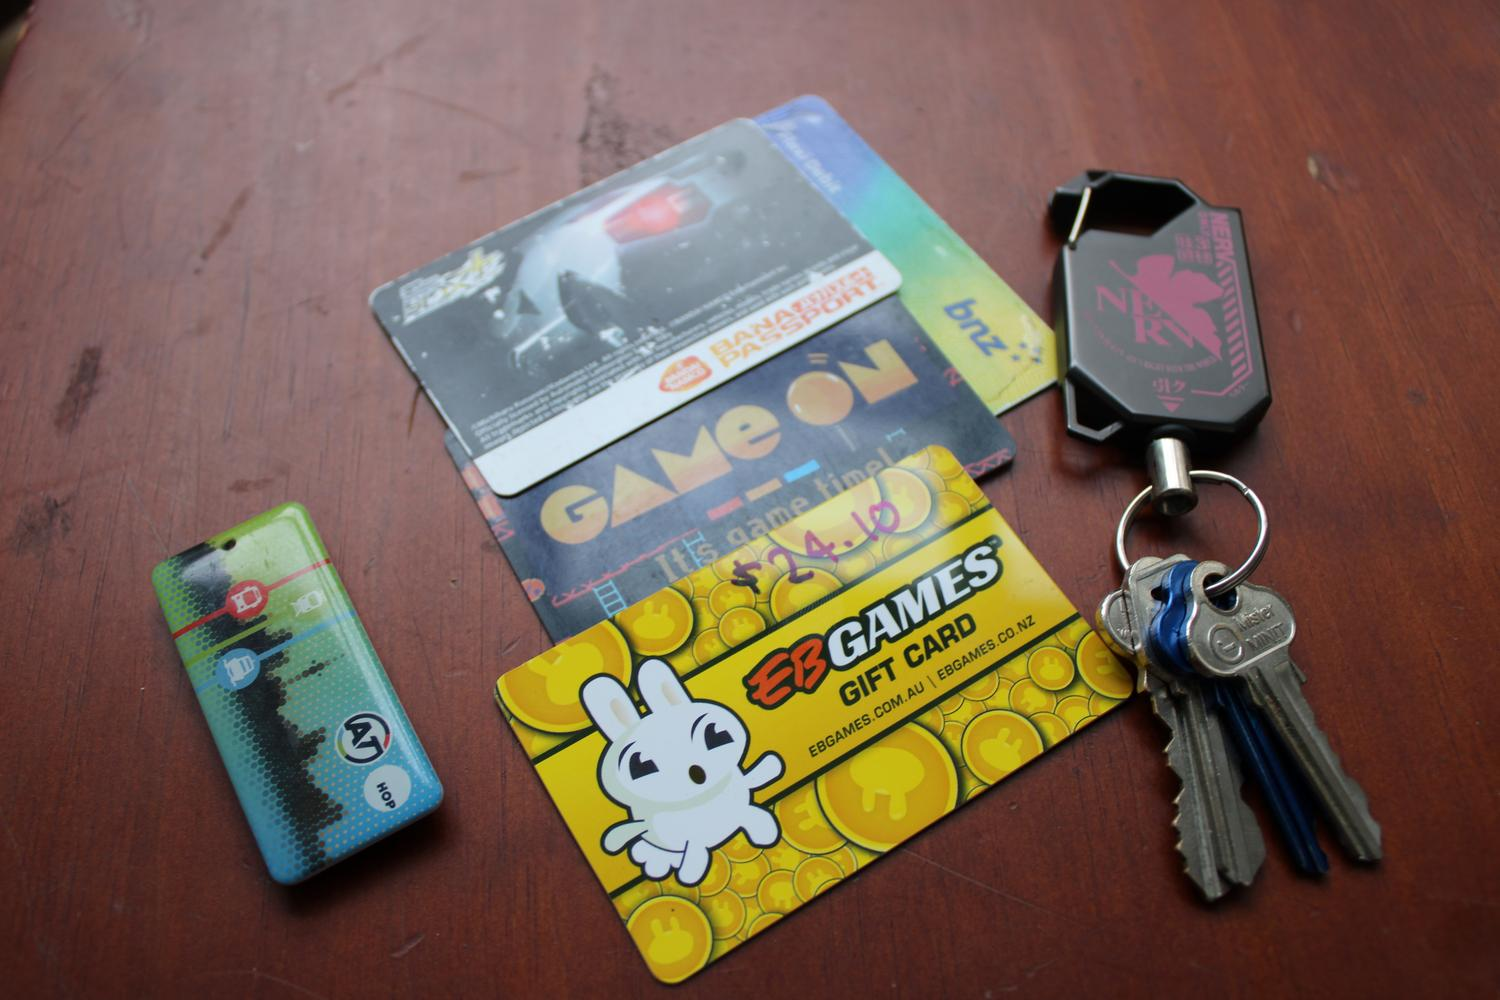 A close up photo of a table surface showing the smaller transit card to the left, a few remaining physical cards that I like to keep around and a carabiner containing various house keys.